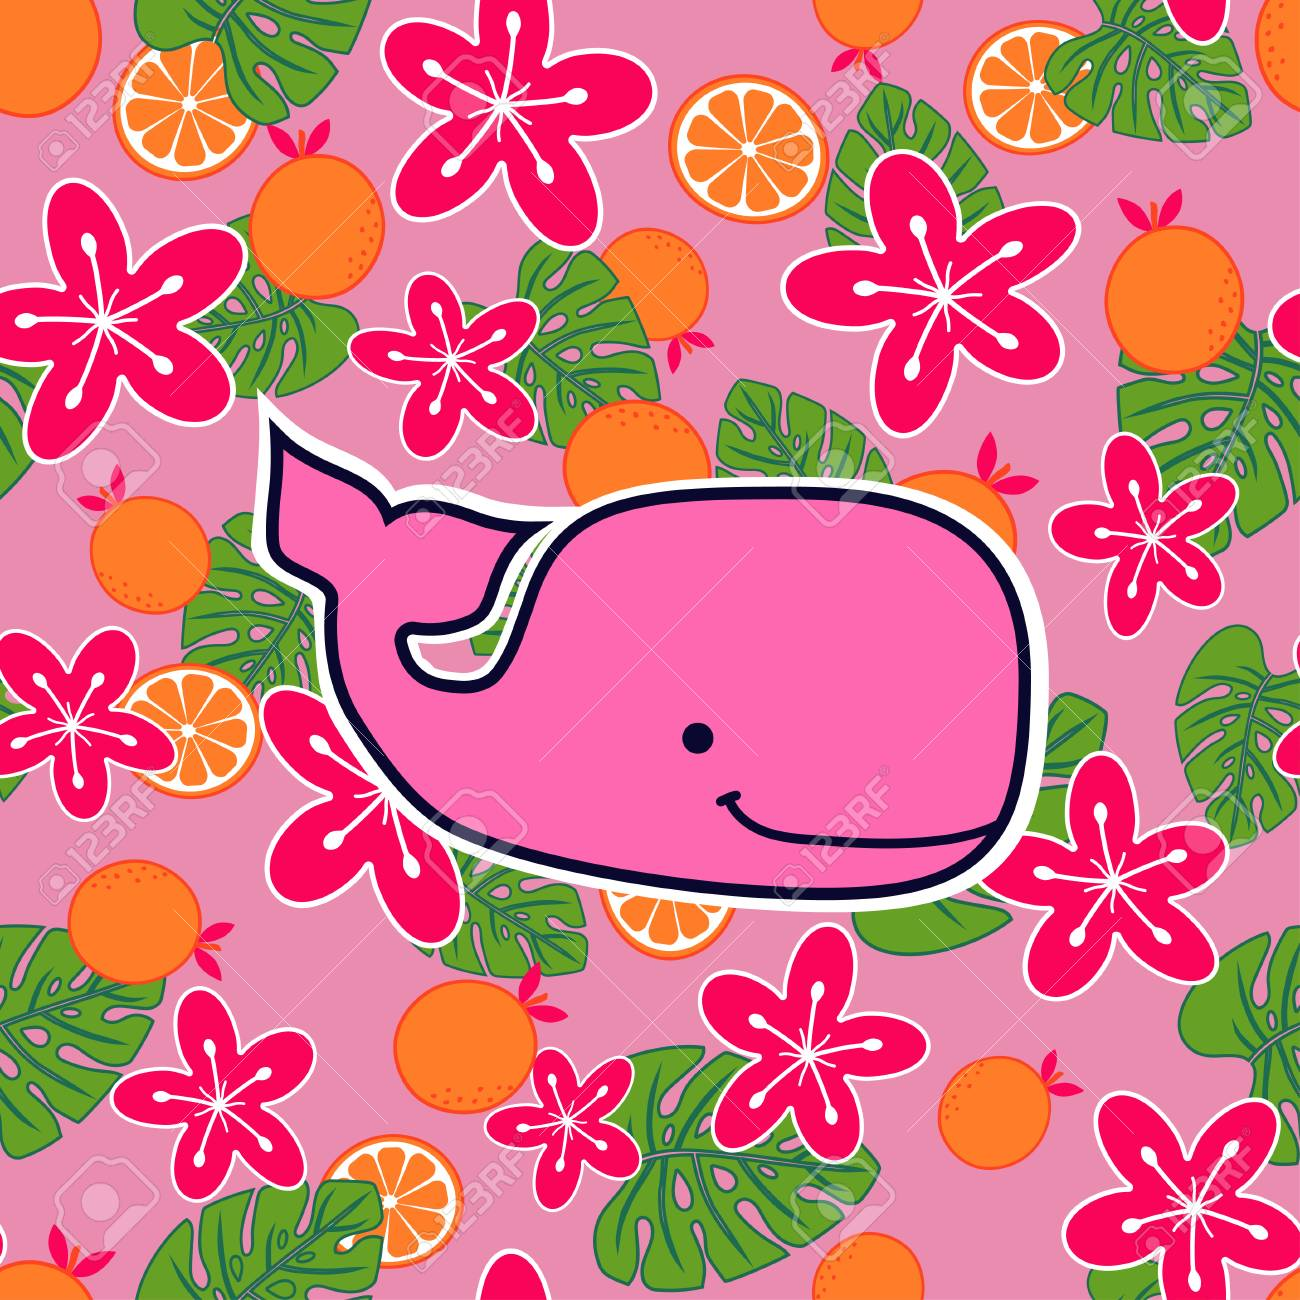 Pattern With Pinksperm Whale On Flower And Fruit Background Royalty Free Cliparts Vectors And Stock Illustration Image 99599125